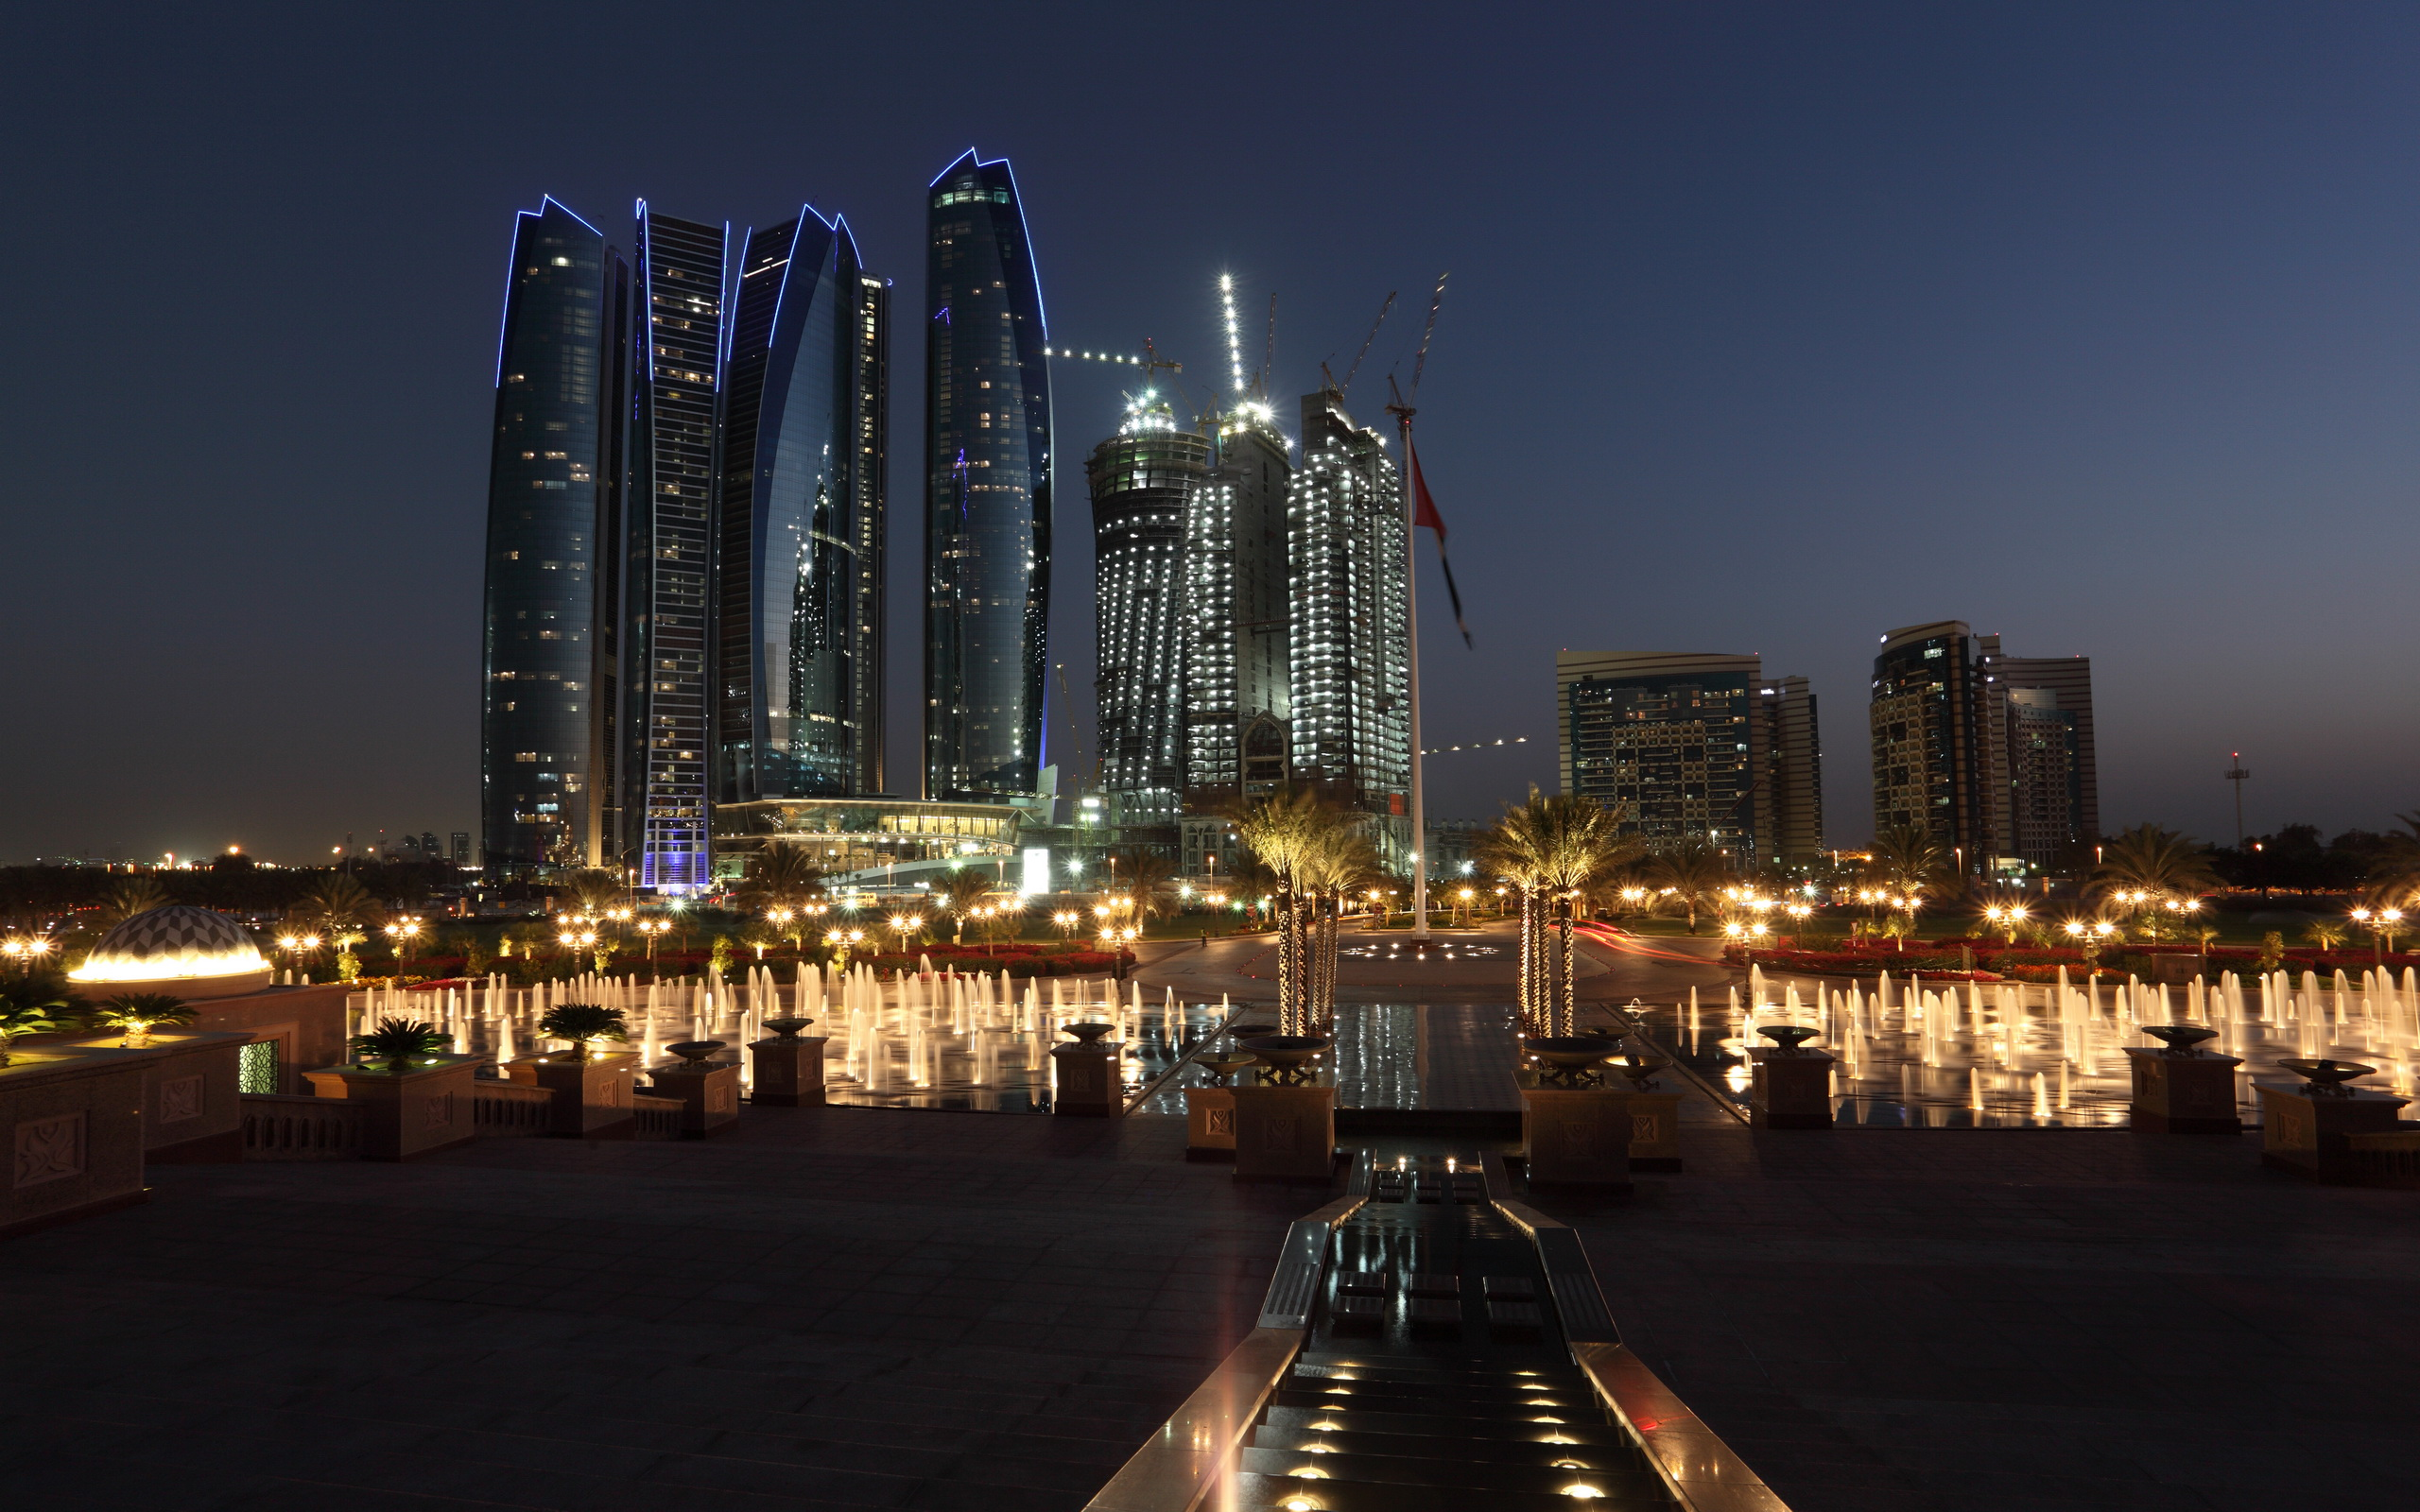 hotels in saudi arabia wallpaper check out hotels in